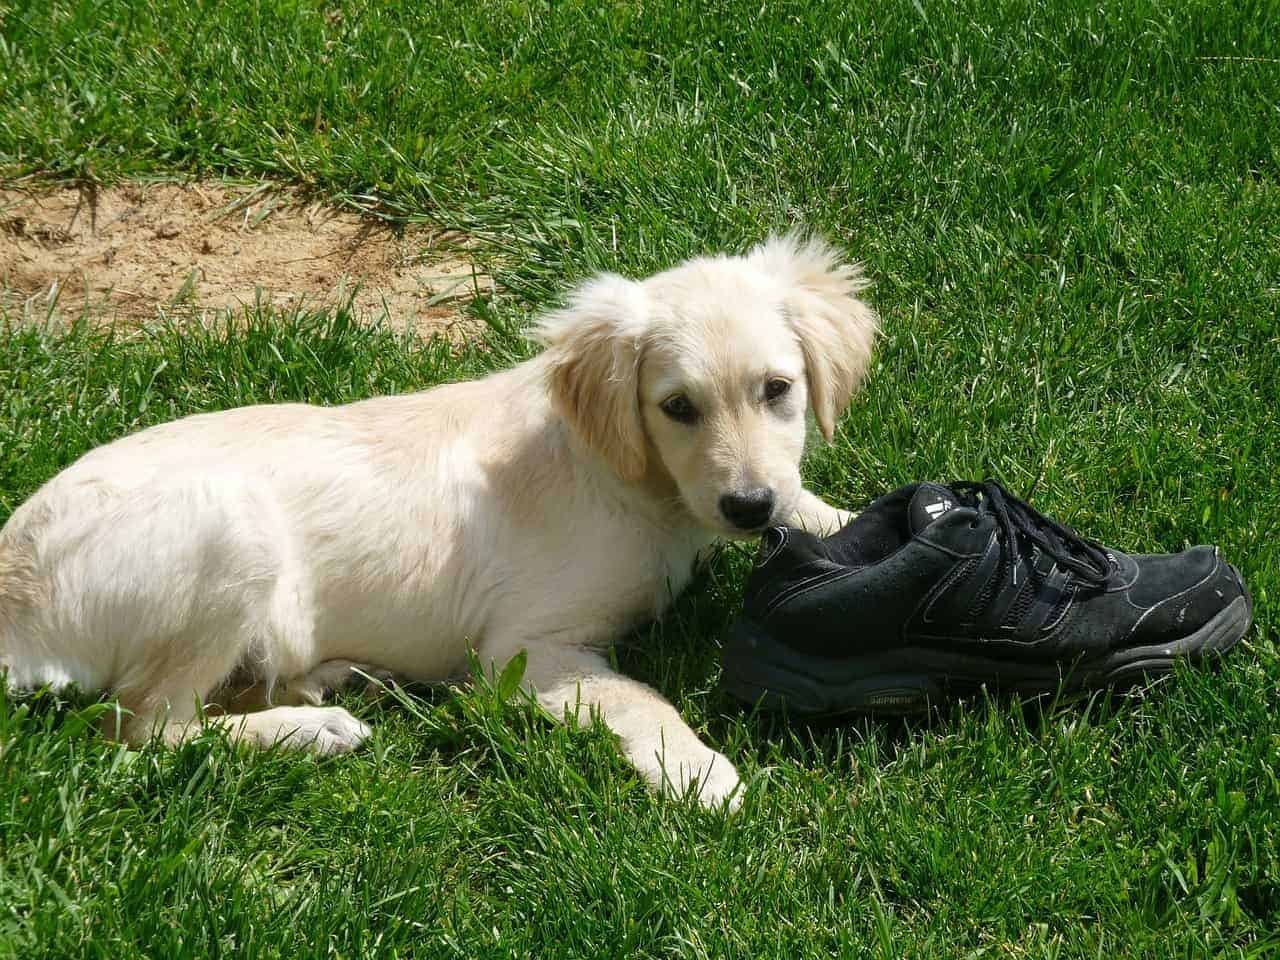 crate training for potty training golden retriever